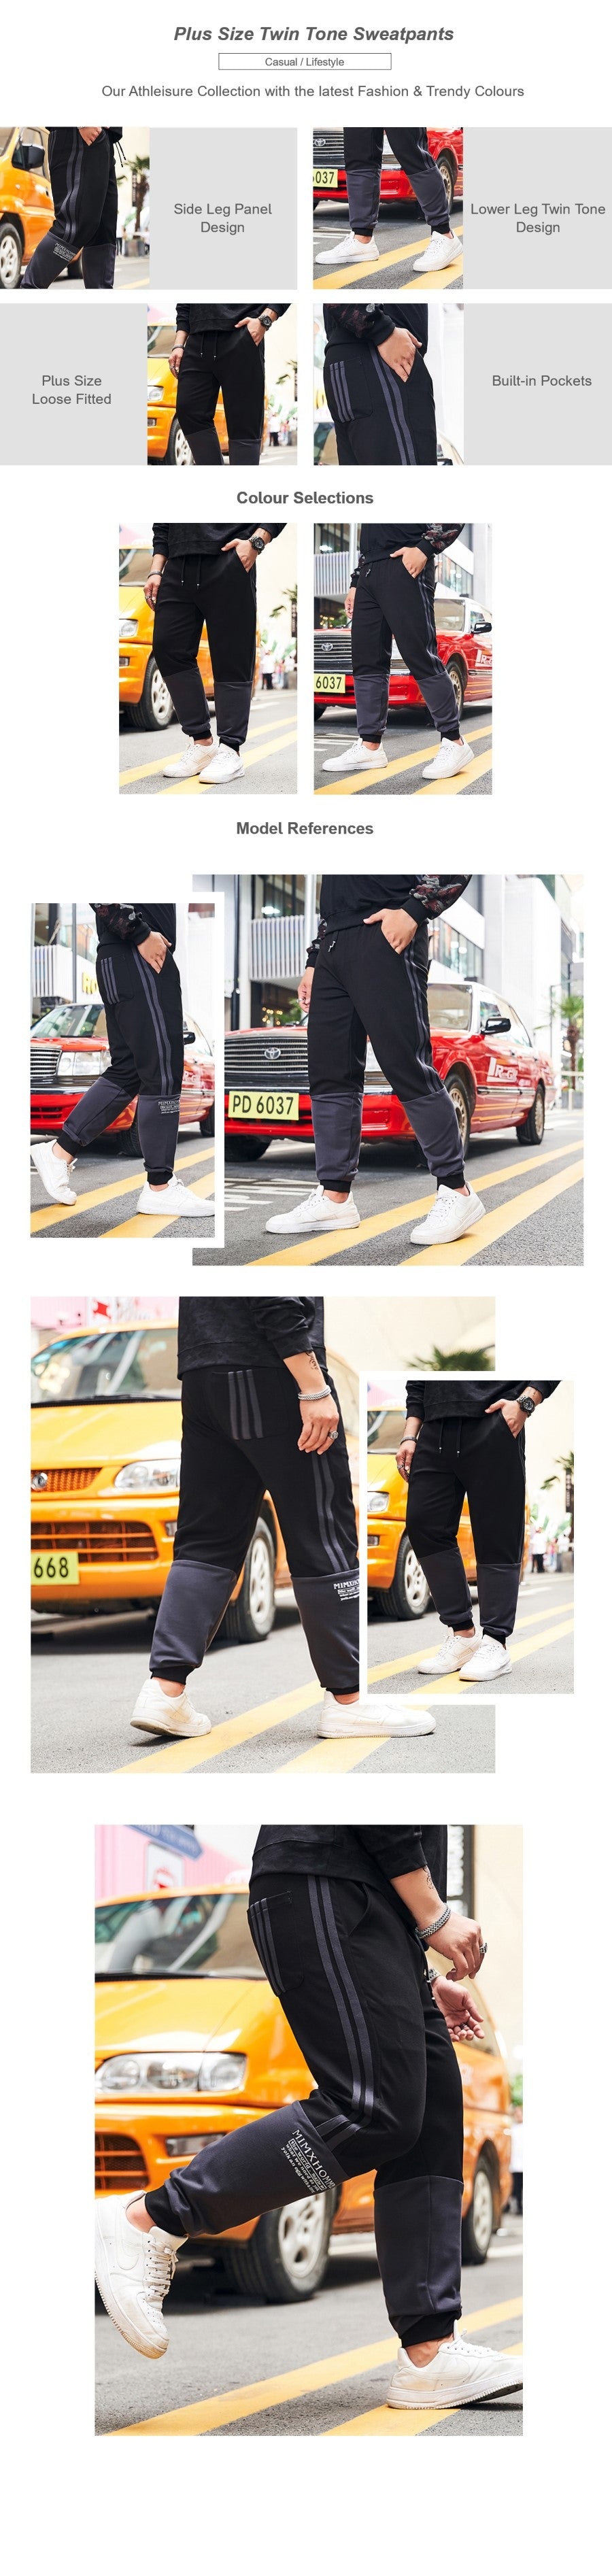 Plus Size Twin Tone Sweatpants